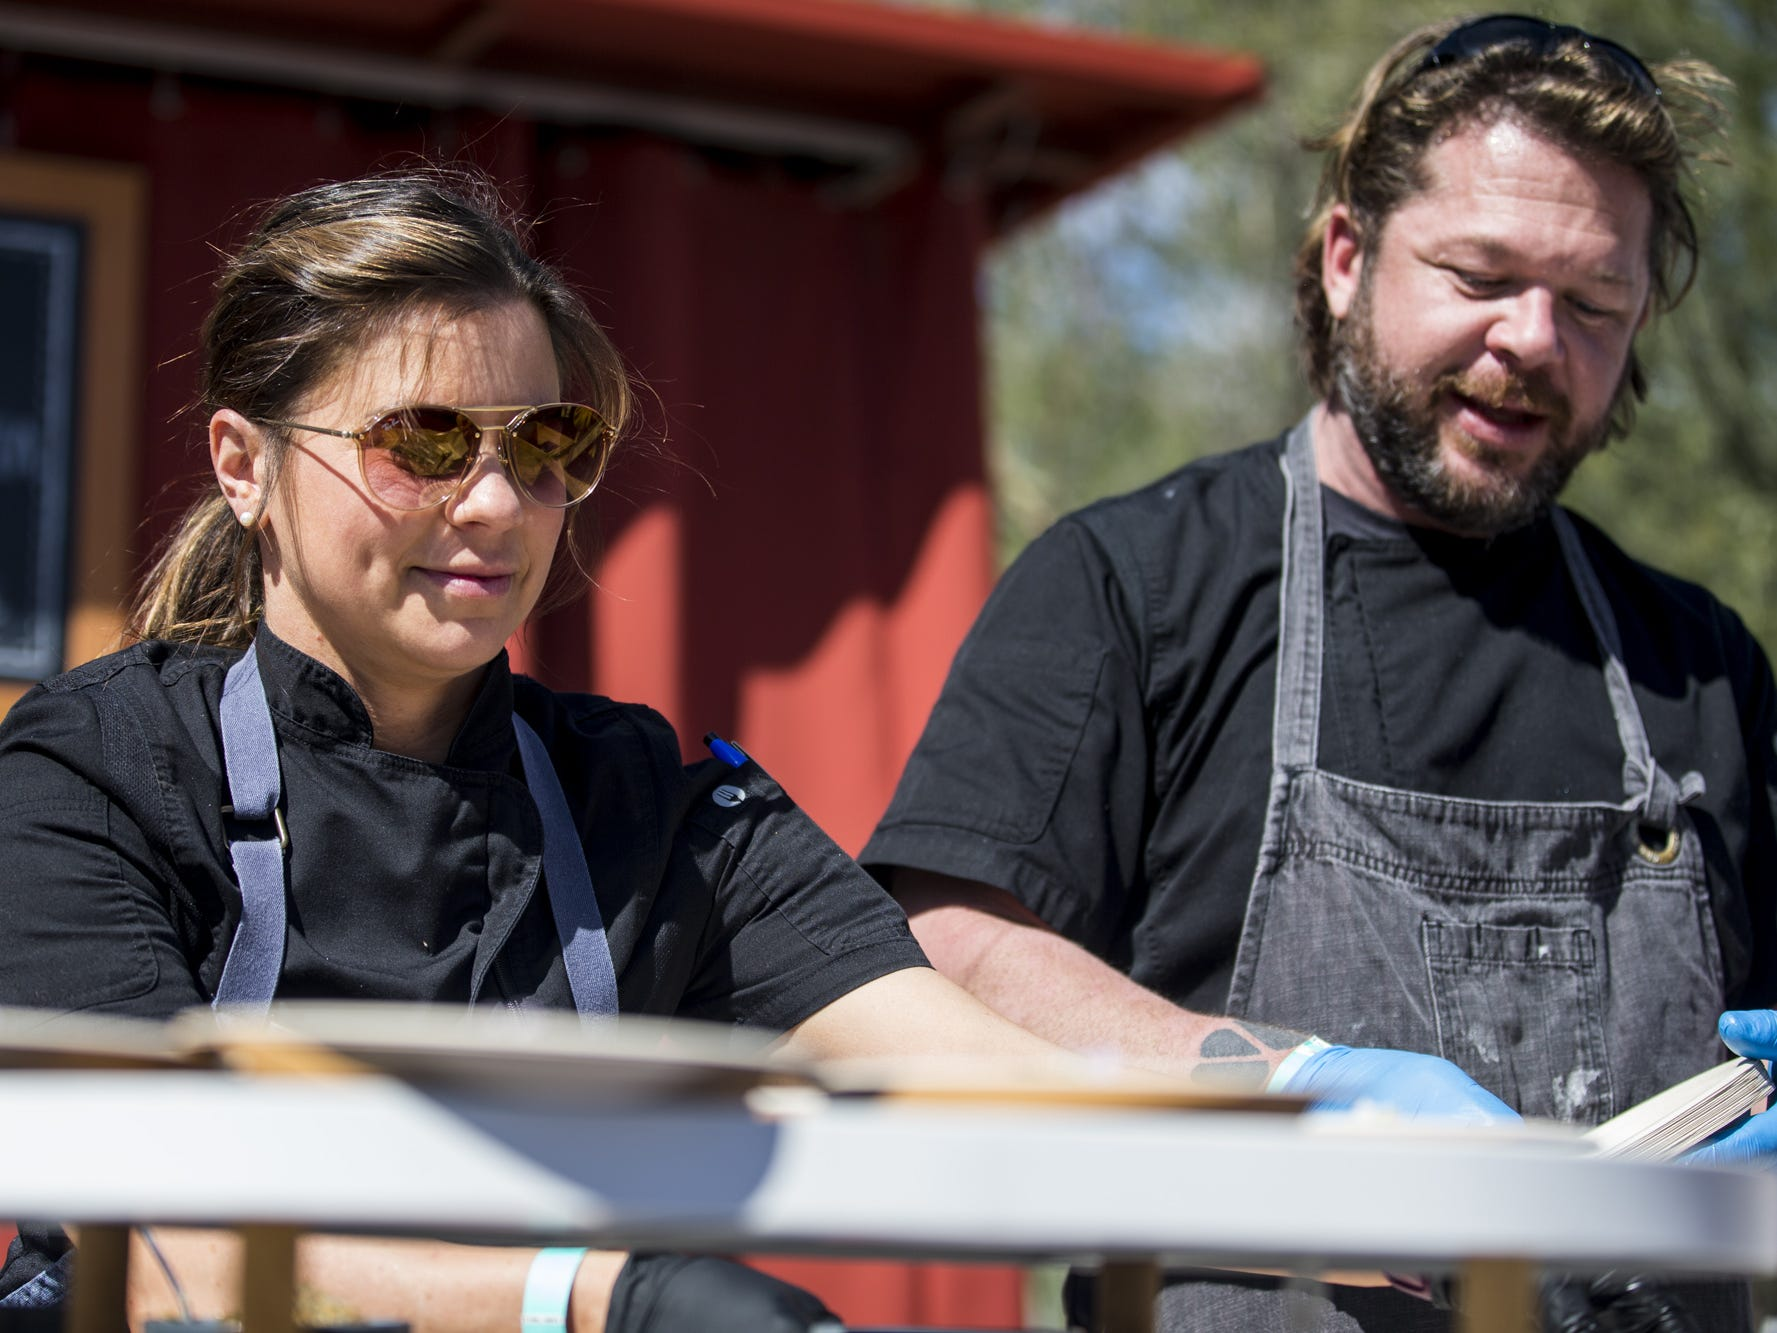 Rochelle Daniel and Chops Smith of Fat Ox serve samples during Day 1 of the Devour Culinary Classic on Saturday, Feb. 23, 2019, at Desert Botanical Garden in Phoenix.